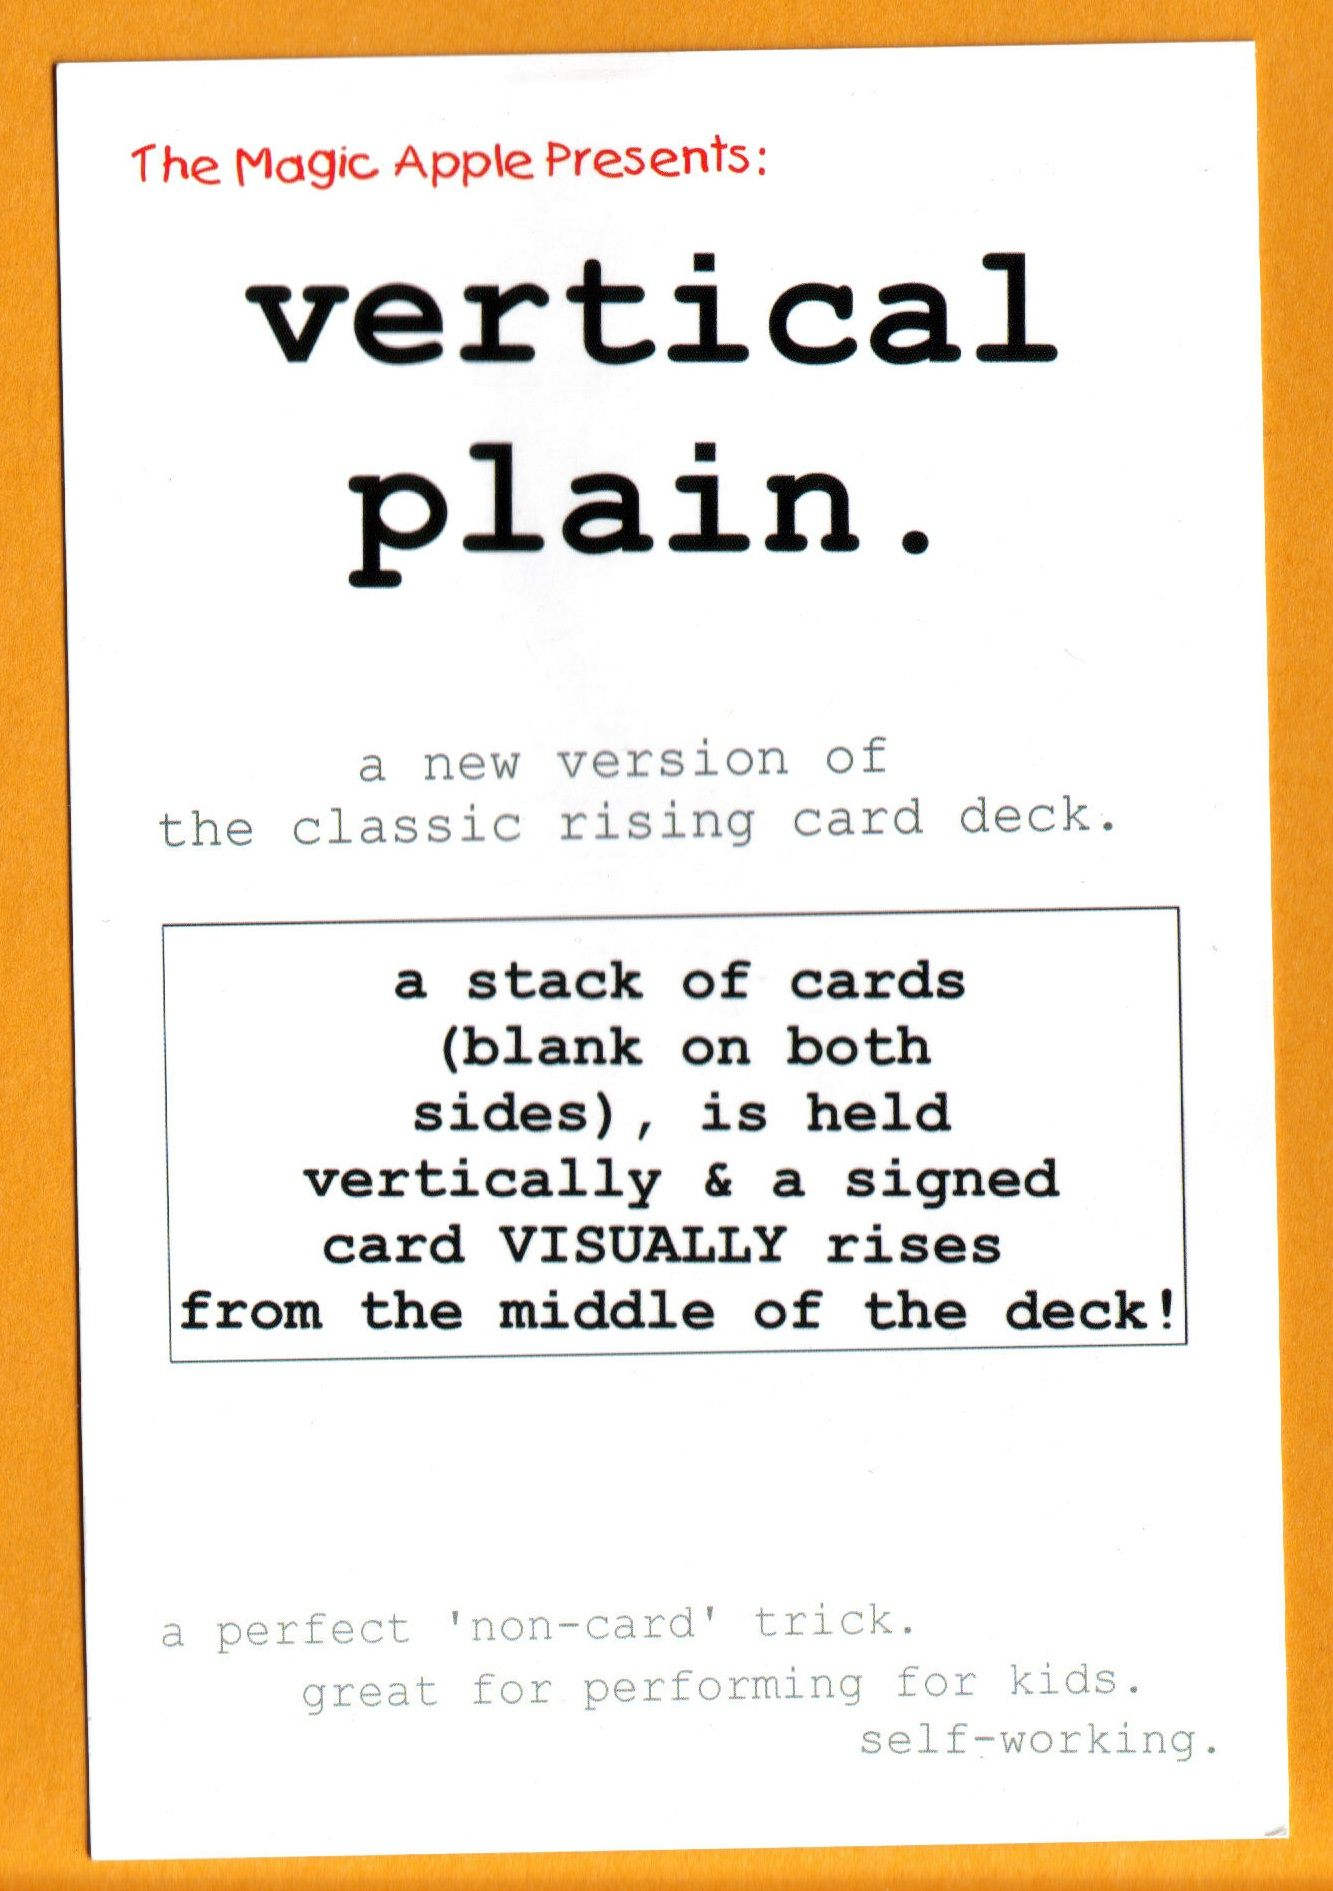 Vertical Plain by The Magic Apple